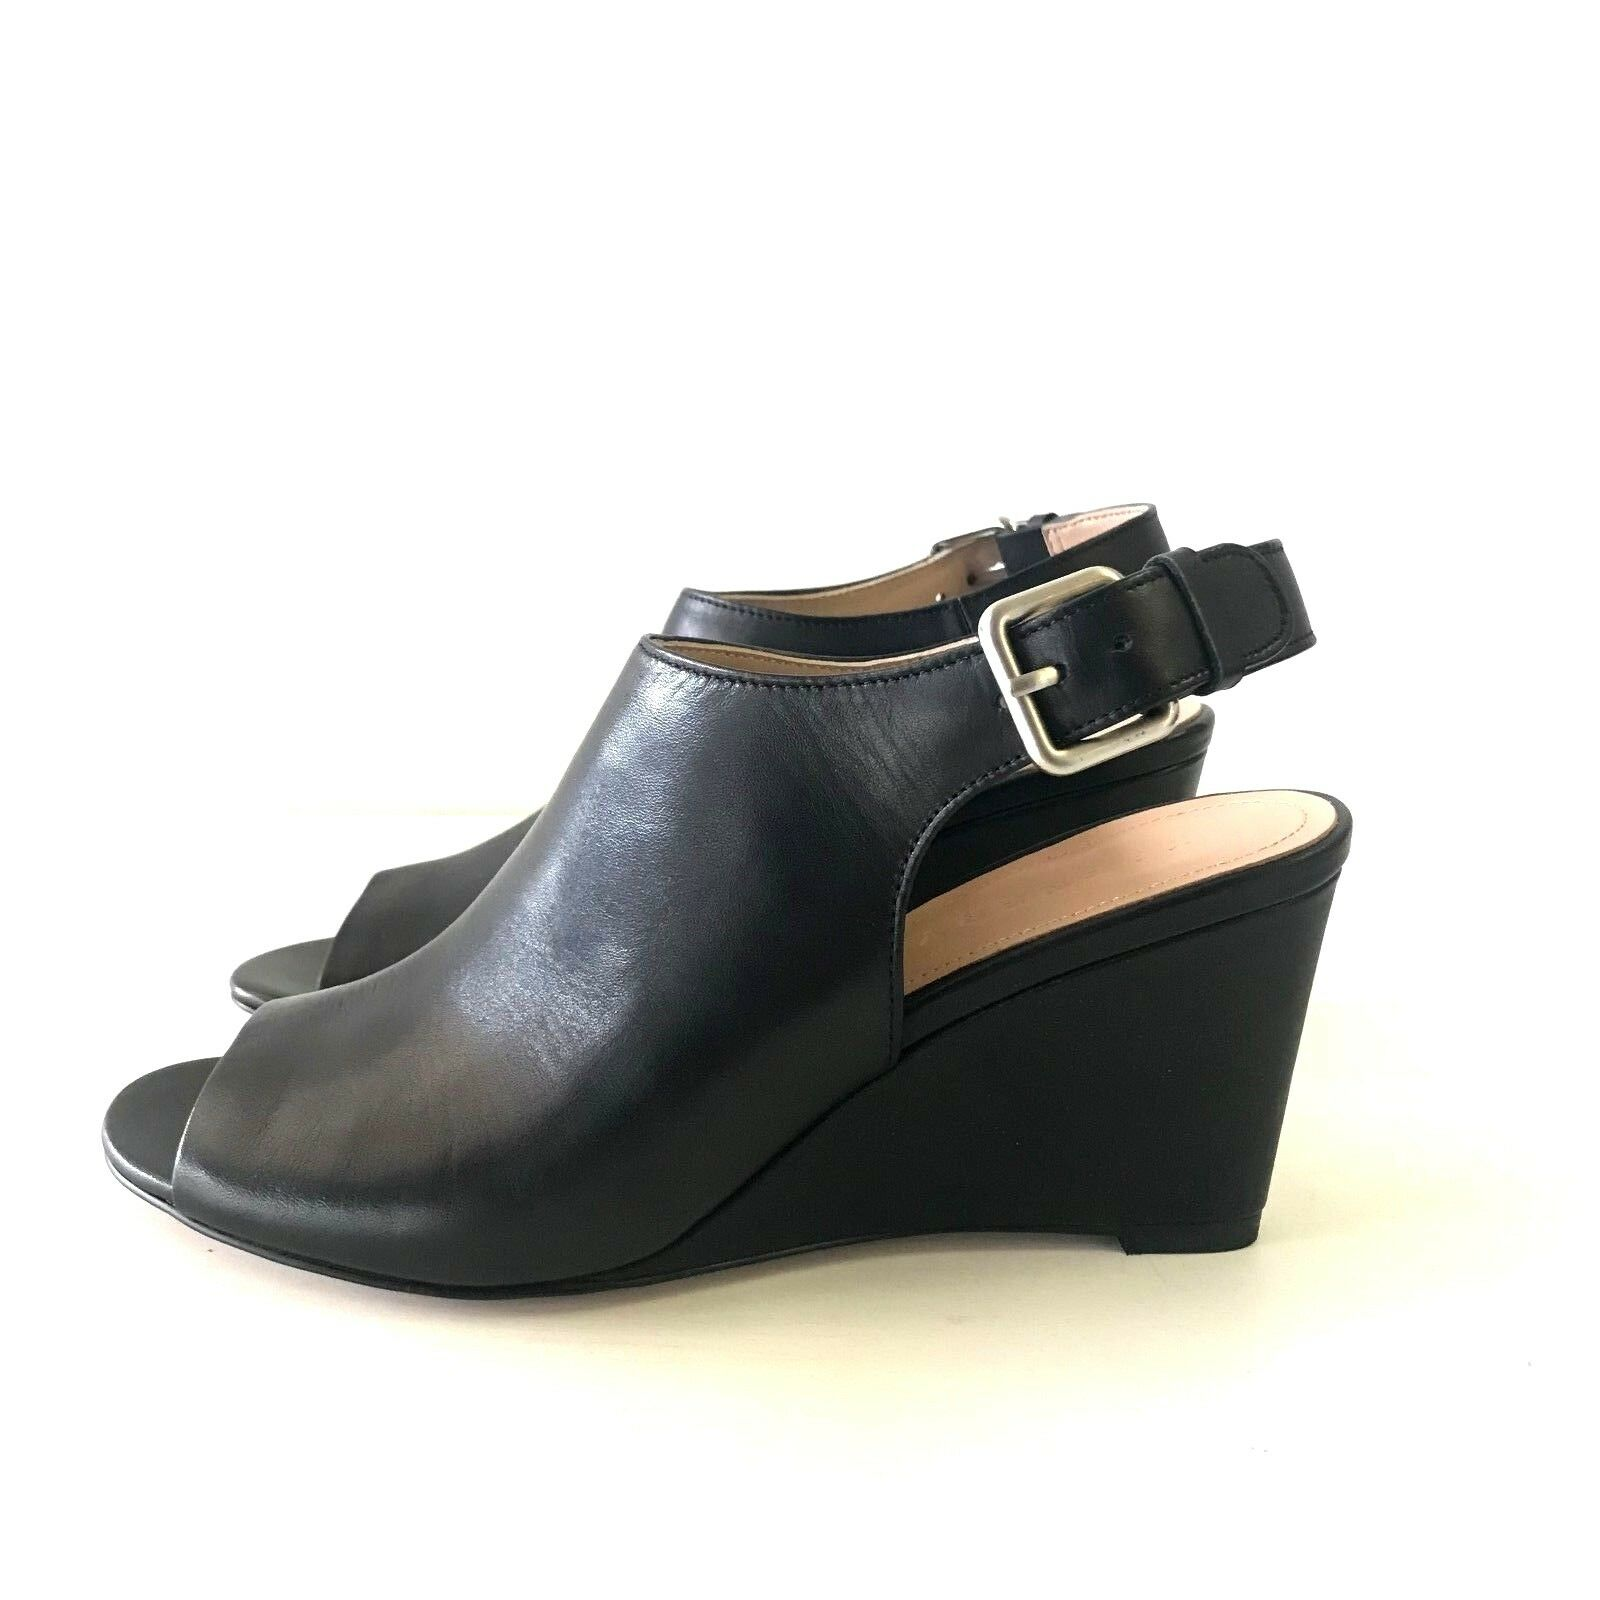 [COUNTRY ROAD] SZ 38,39 [CR LOVE] trenery eleanor wedge - black 7,8